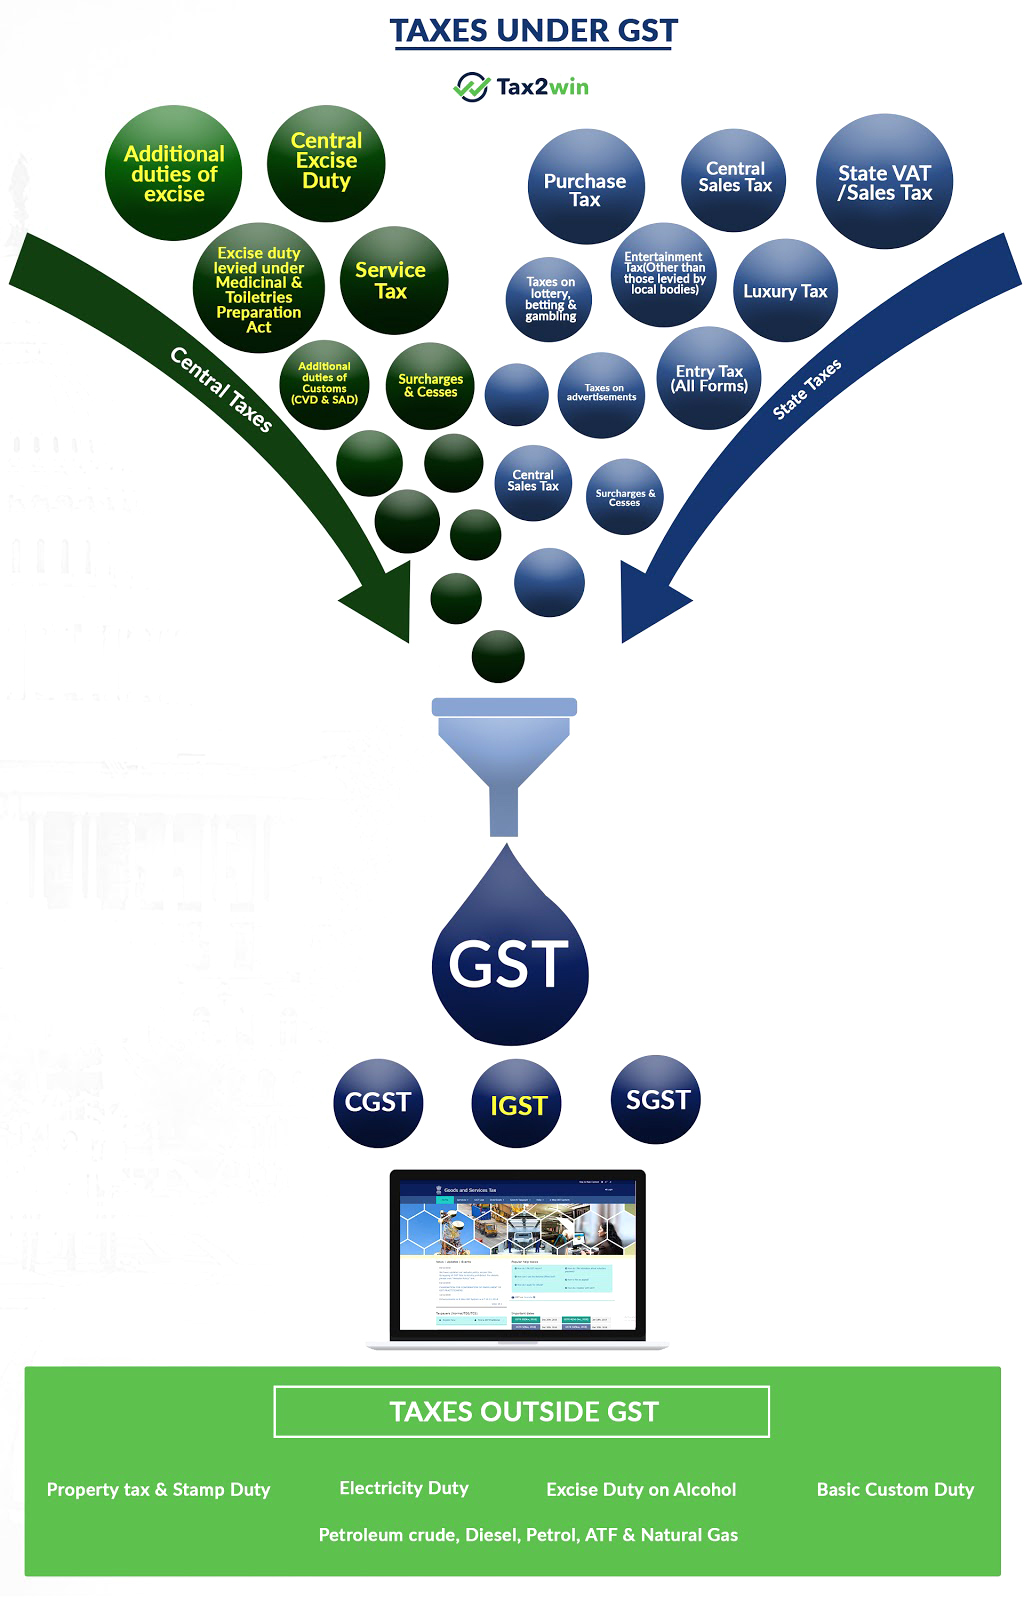 GST Taxes Subsumed